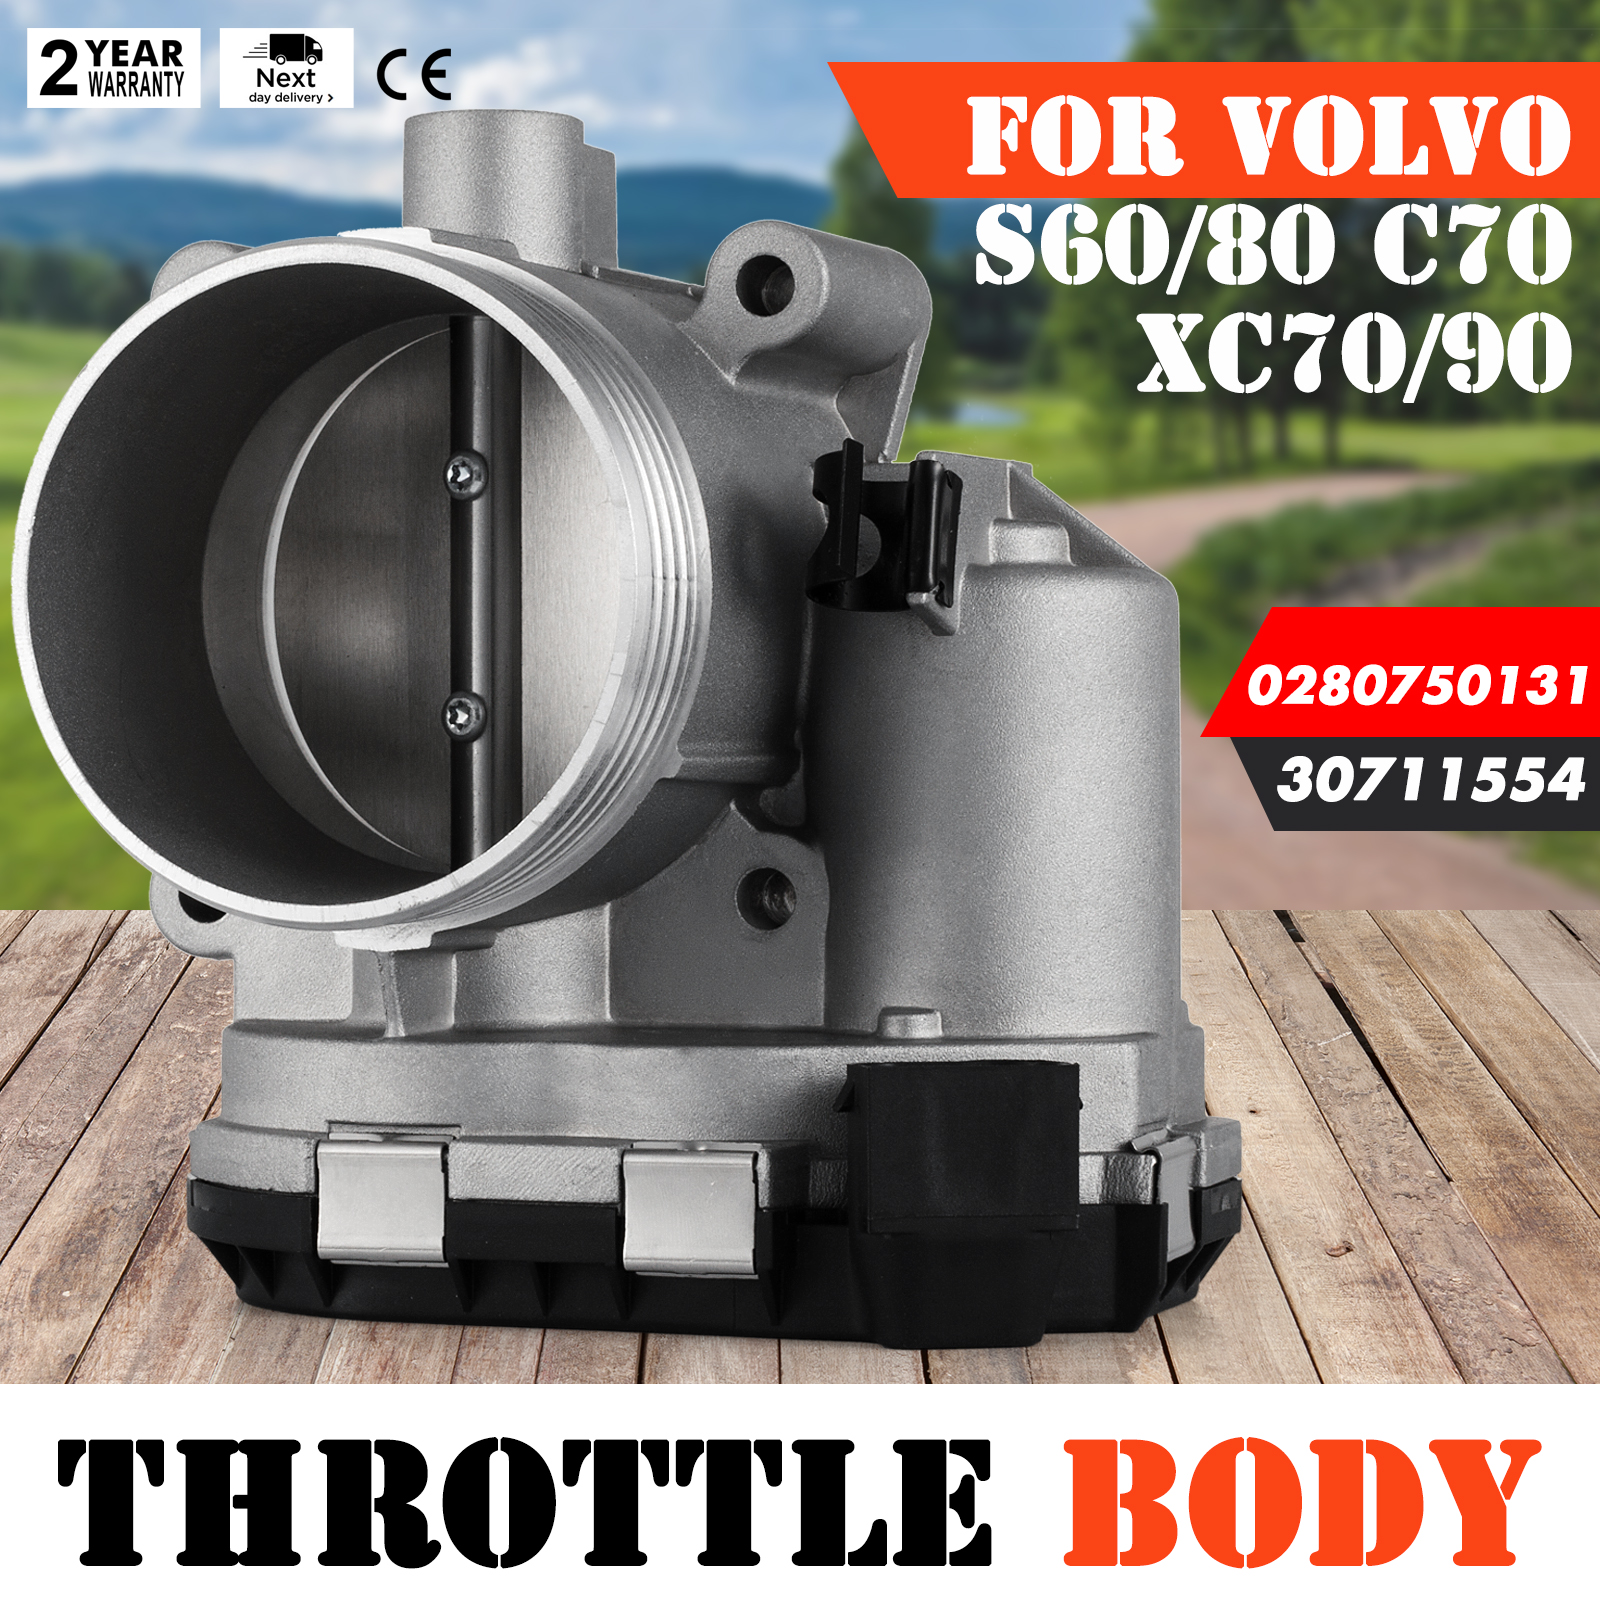 Throttle Body for Volvo C70 S60 S80 V70 XC70 XC90 30711554 Durable Unit OEM